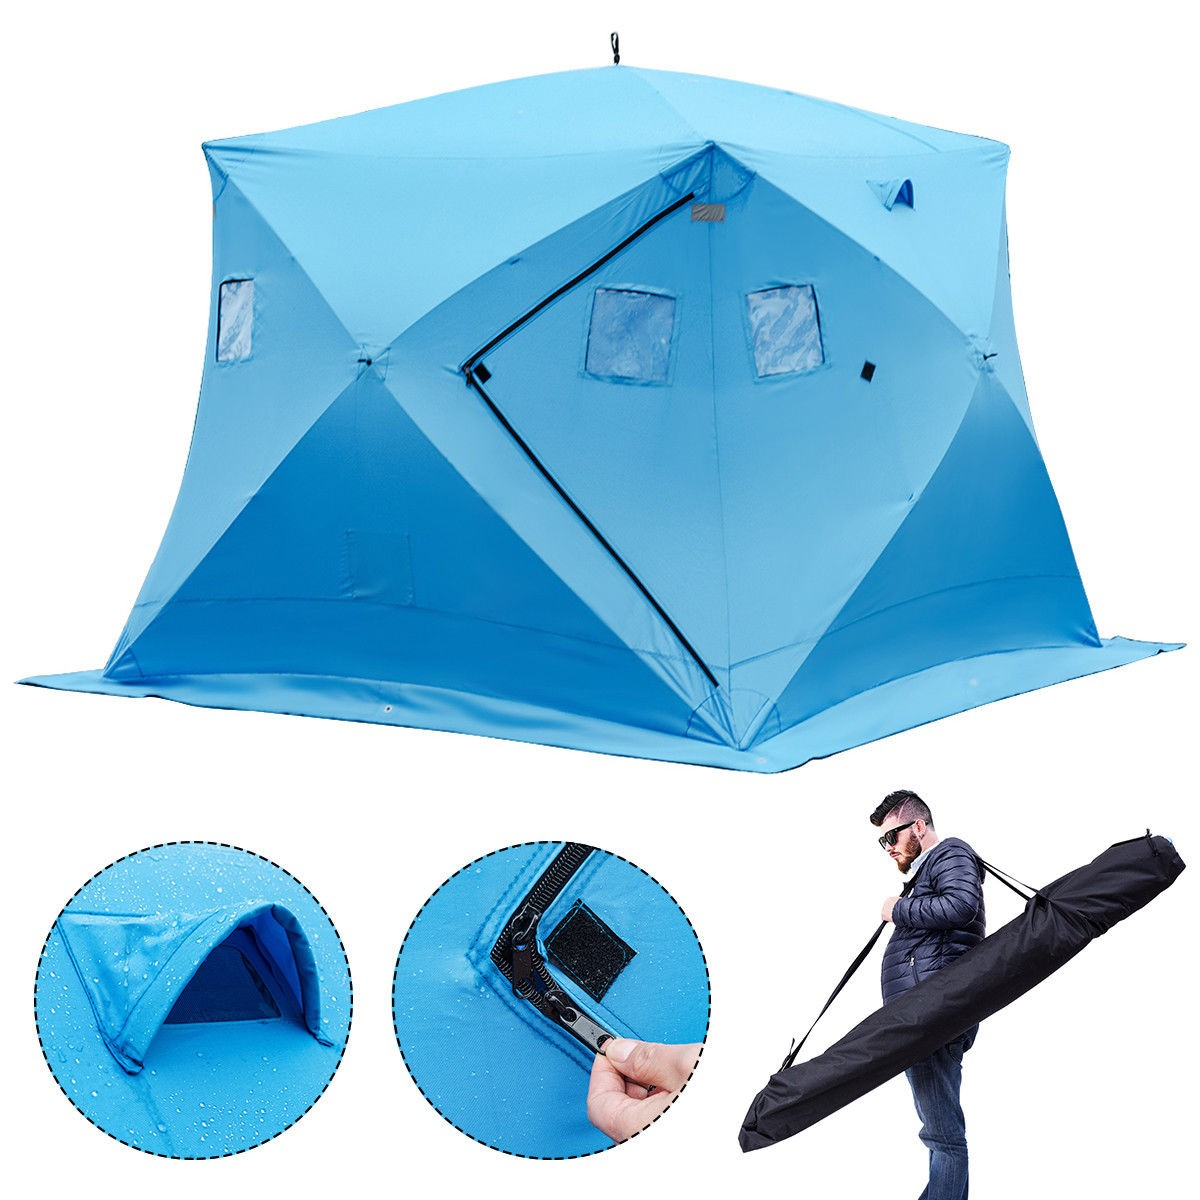 Waterproof Pop-up 4-person Ice Shelter Fishing Tent  sc 1 st  ByChoiceProducts & Waterproof Pop-up 4-person Ice Shelter Fishing Tent u2013 By Choice ...